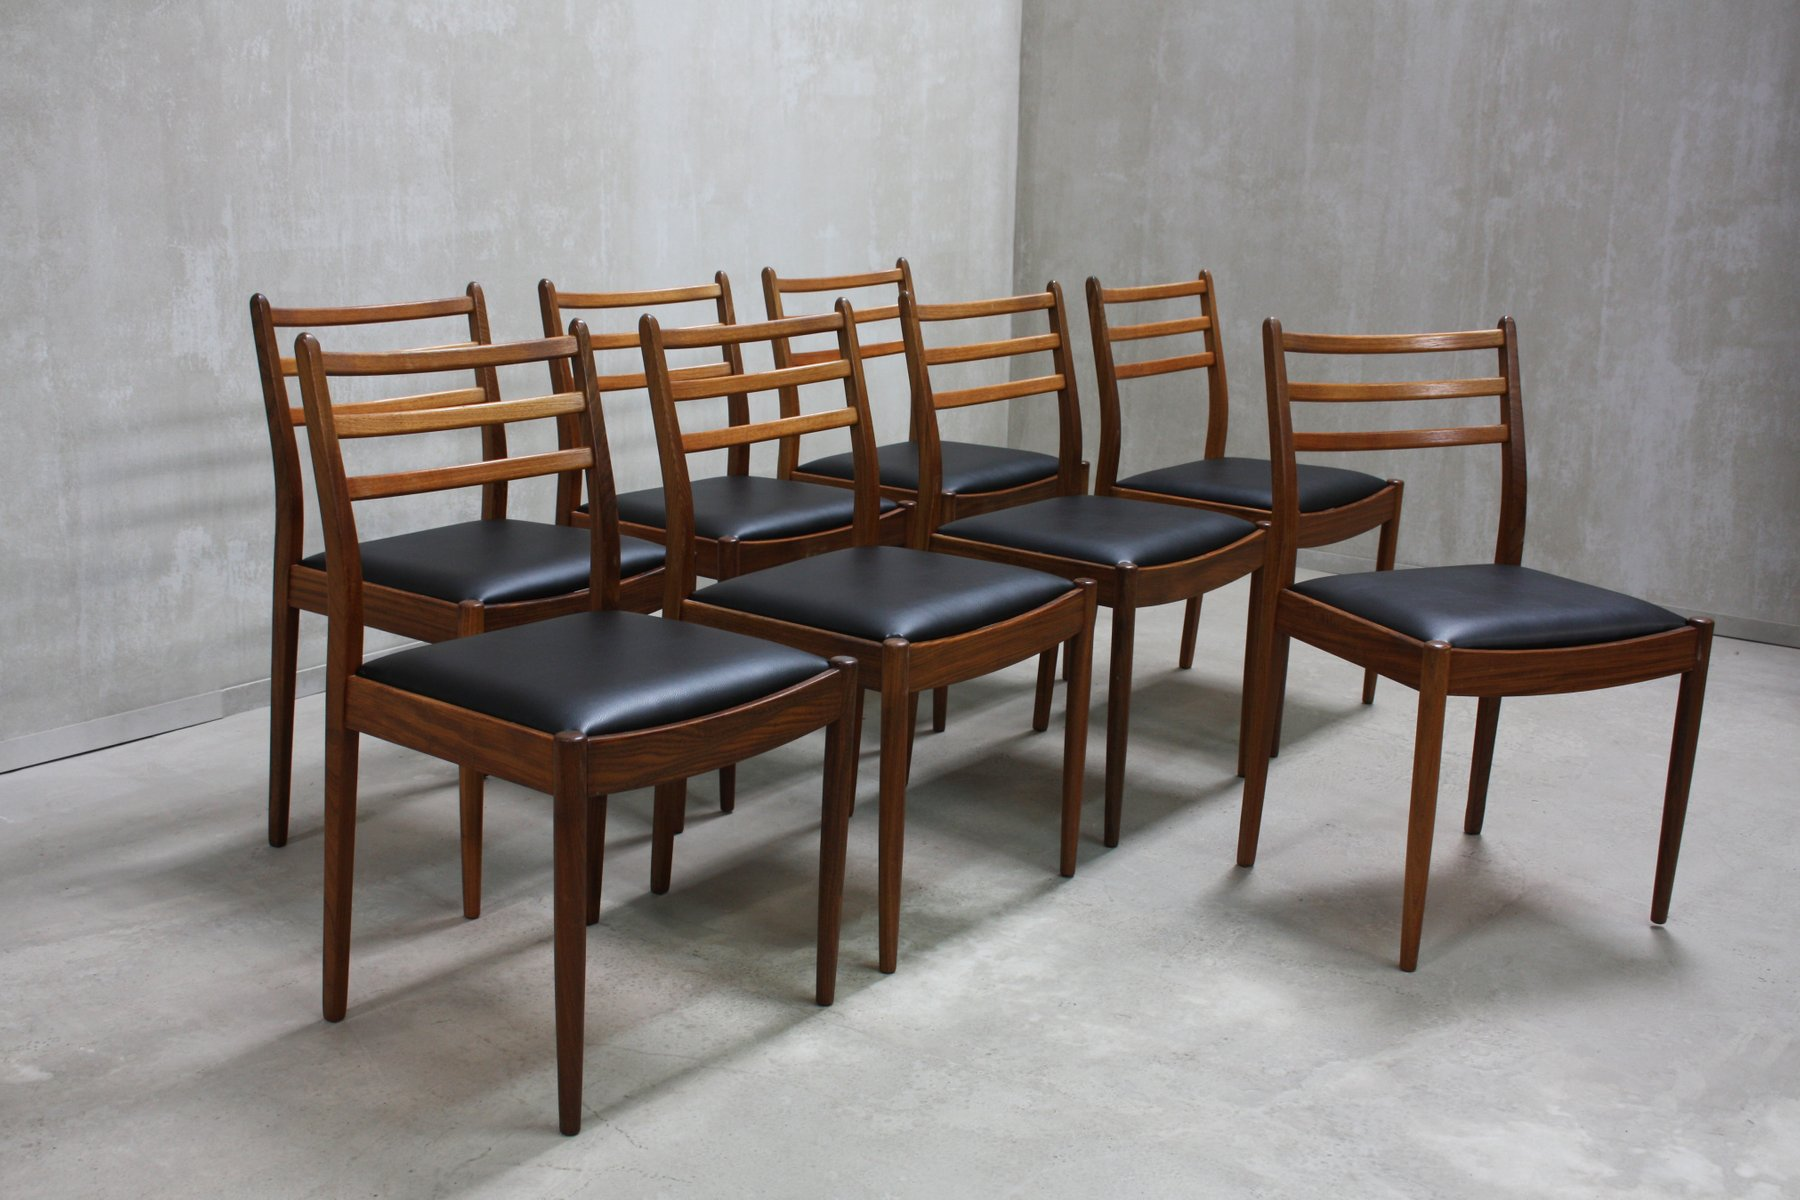 Teak dining chairs by victor wilkins for g plan 1960s for G plan teak dining room chairs